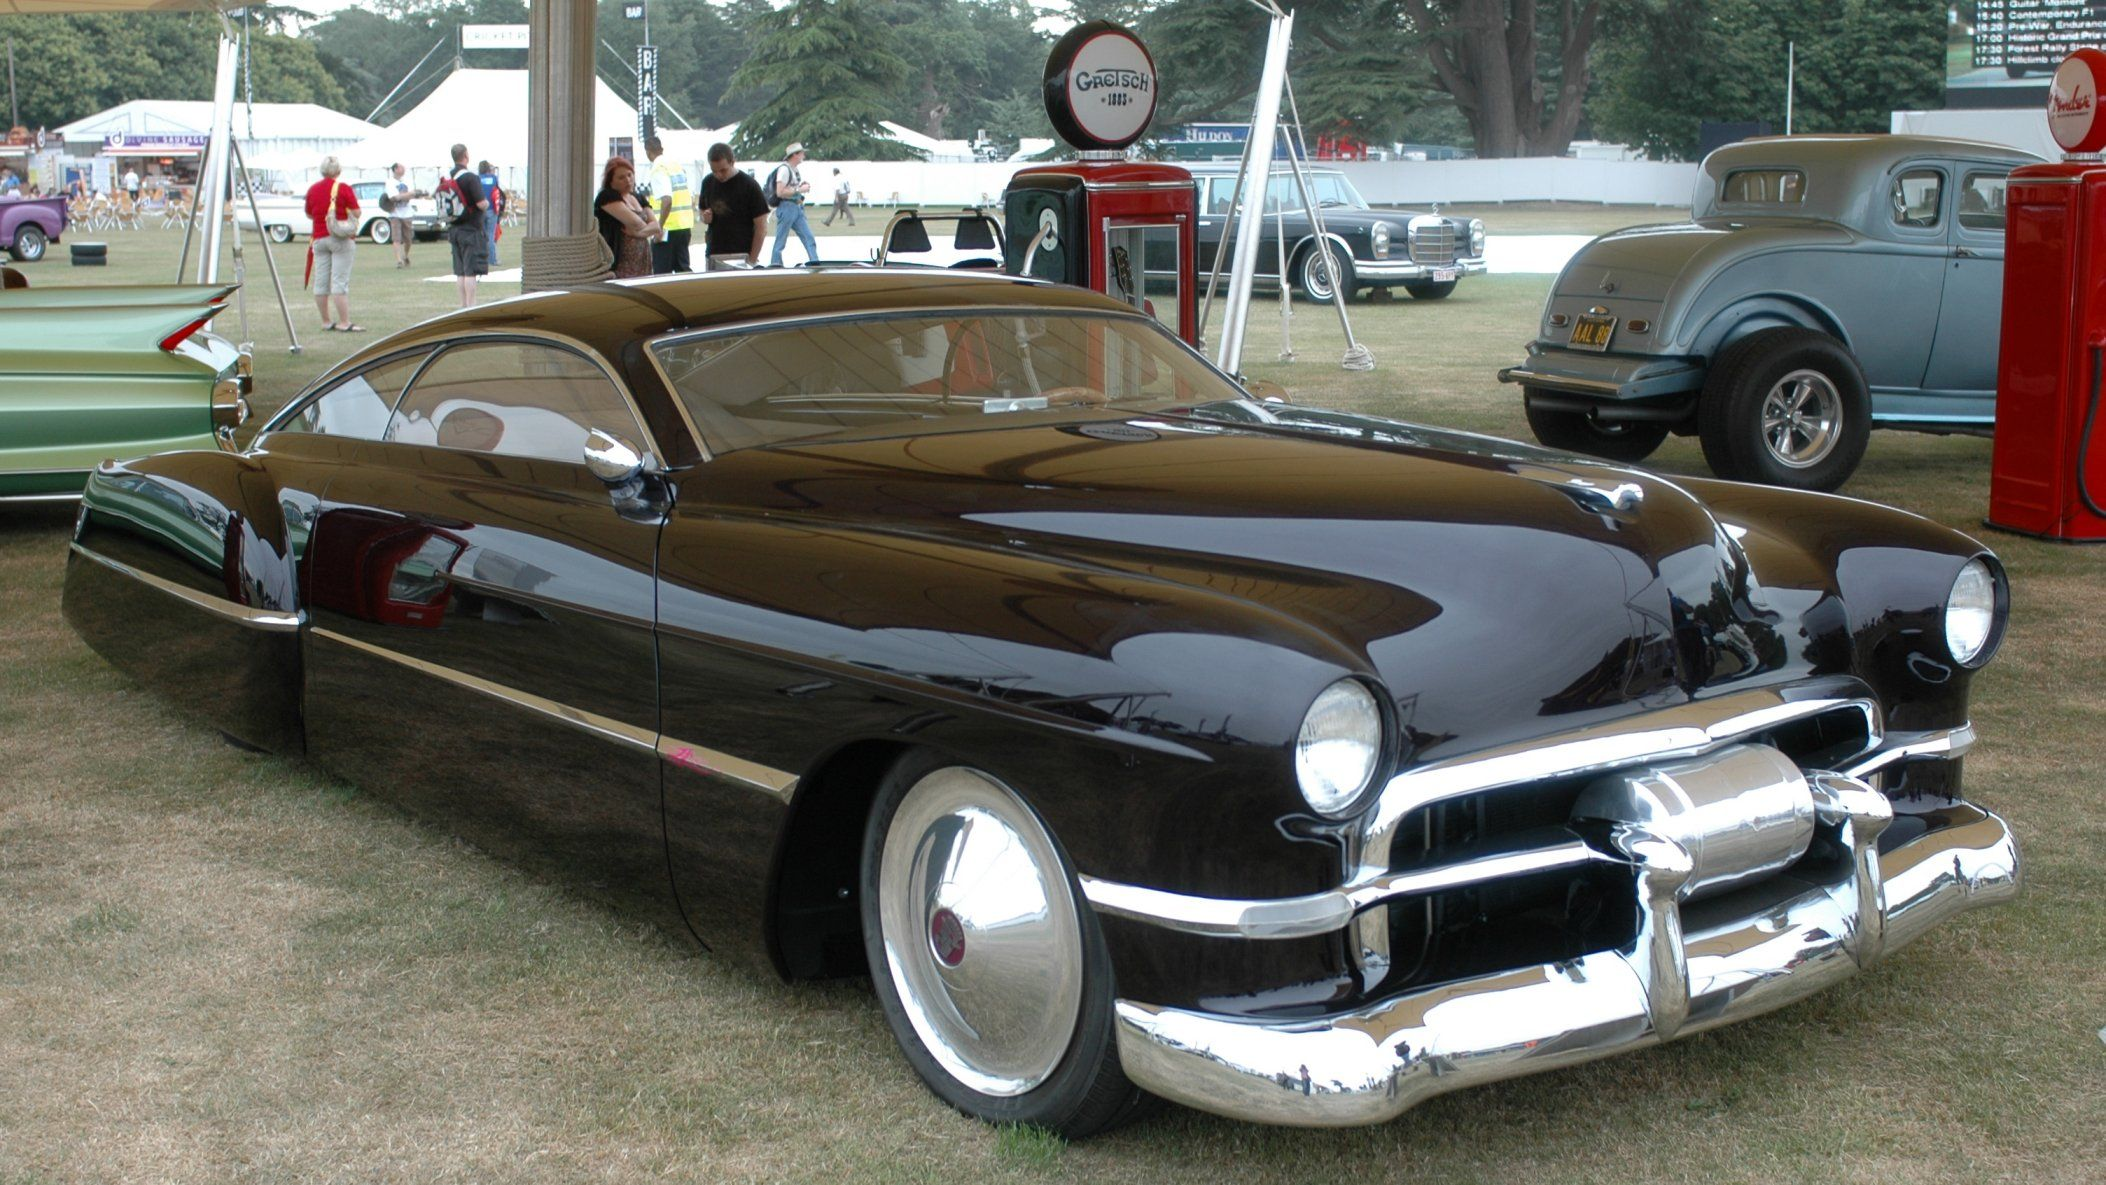 ZZ Top Car Collection | May 15th, 11:01 | Old cars | Pinterest | Top ...